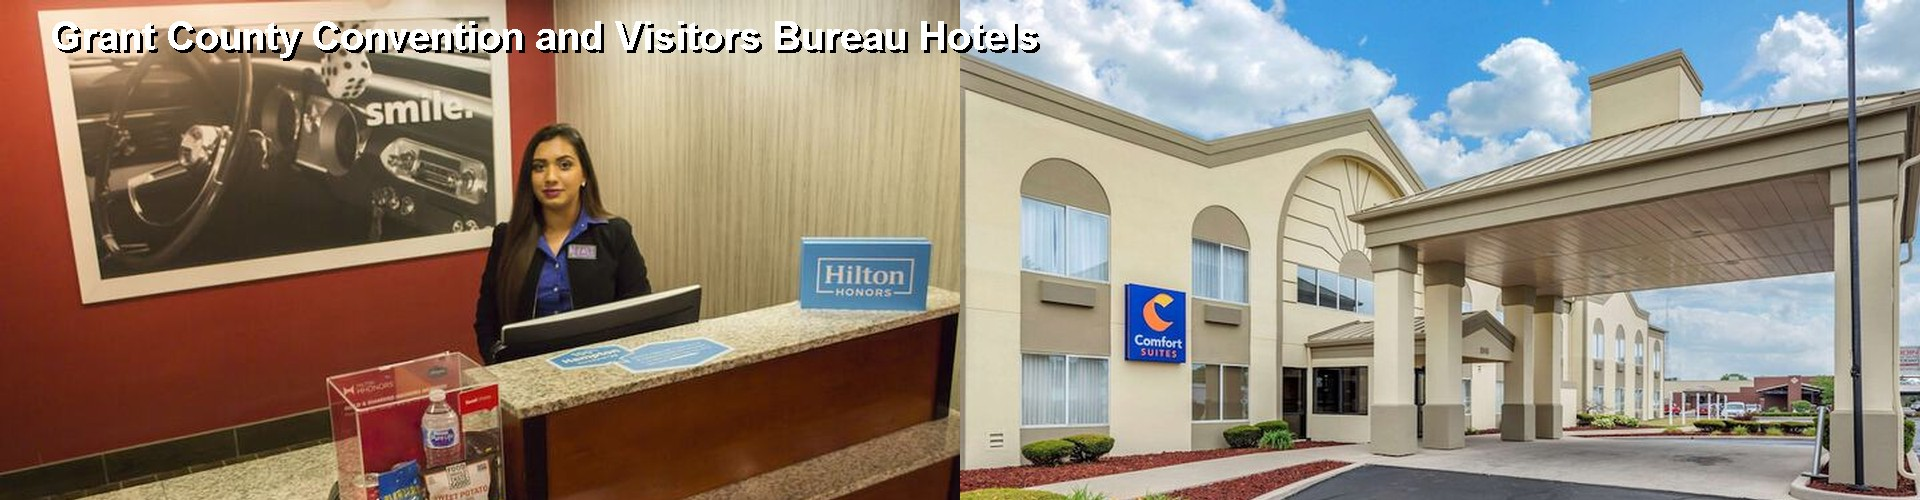 5 Best Hotels near Grant County Convention and Visitors Bureau